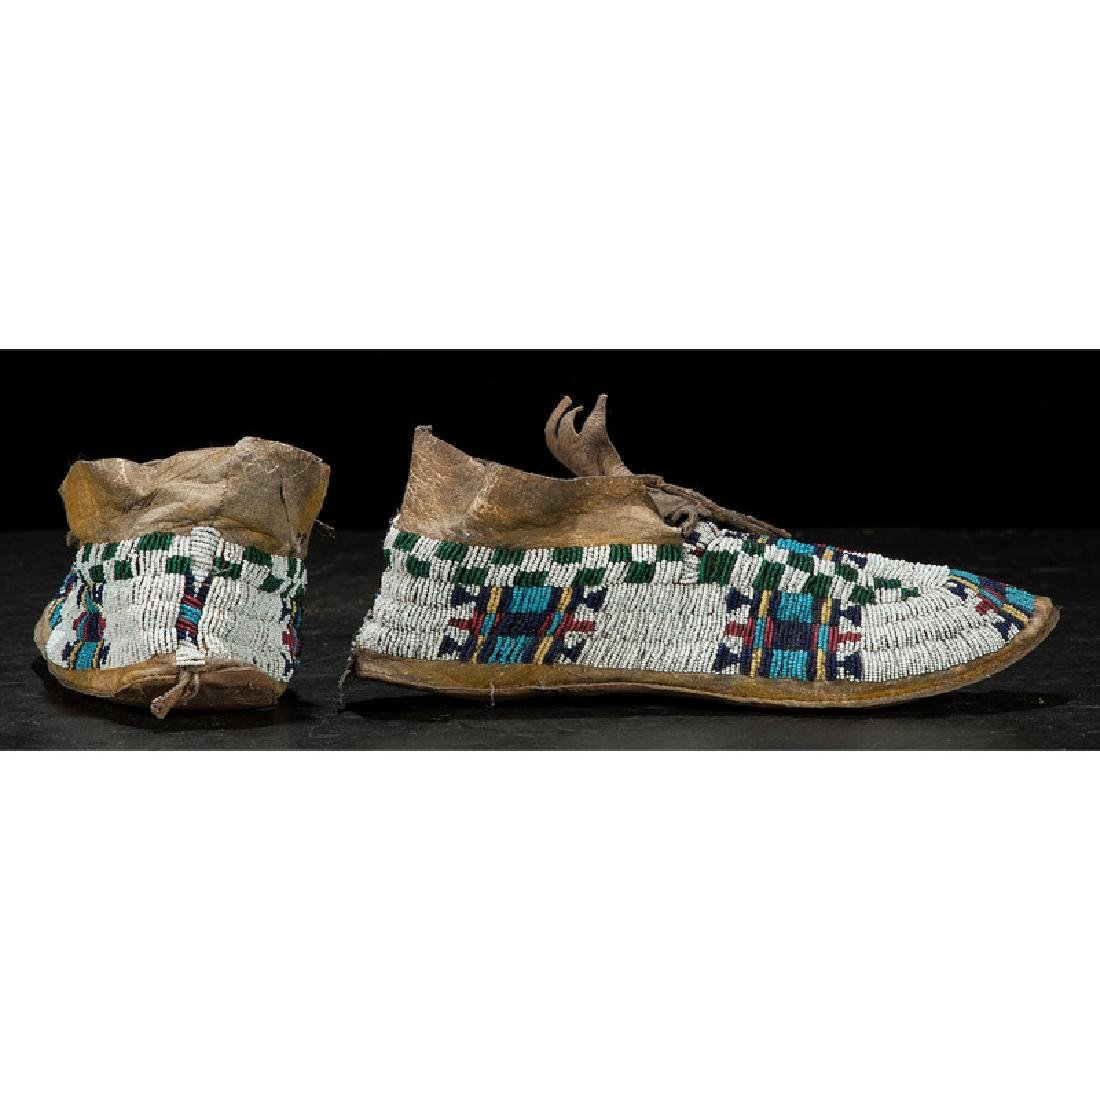 Cheyenne Child's Beaded Hide Moccasins - 2